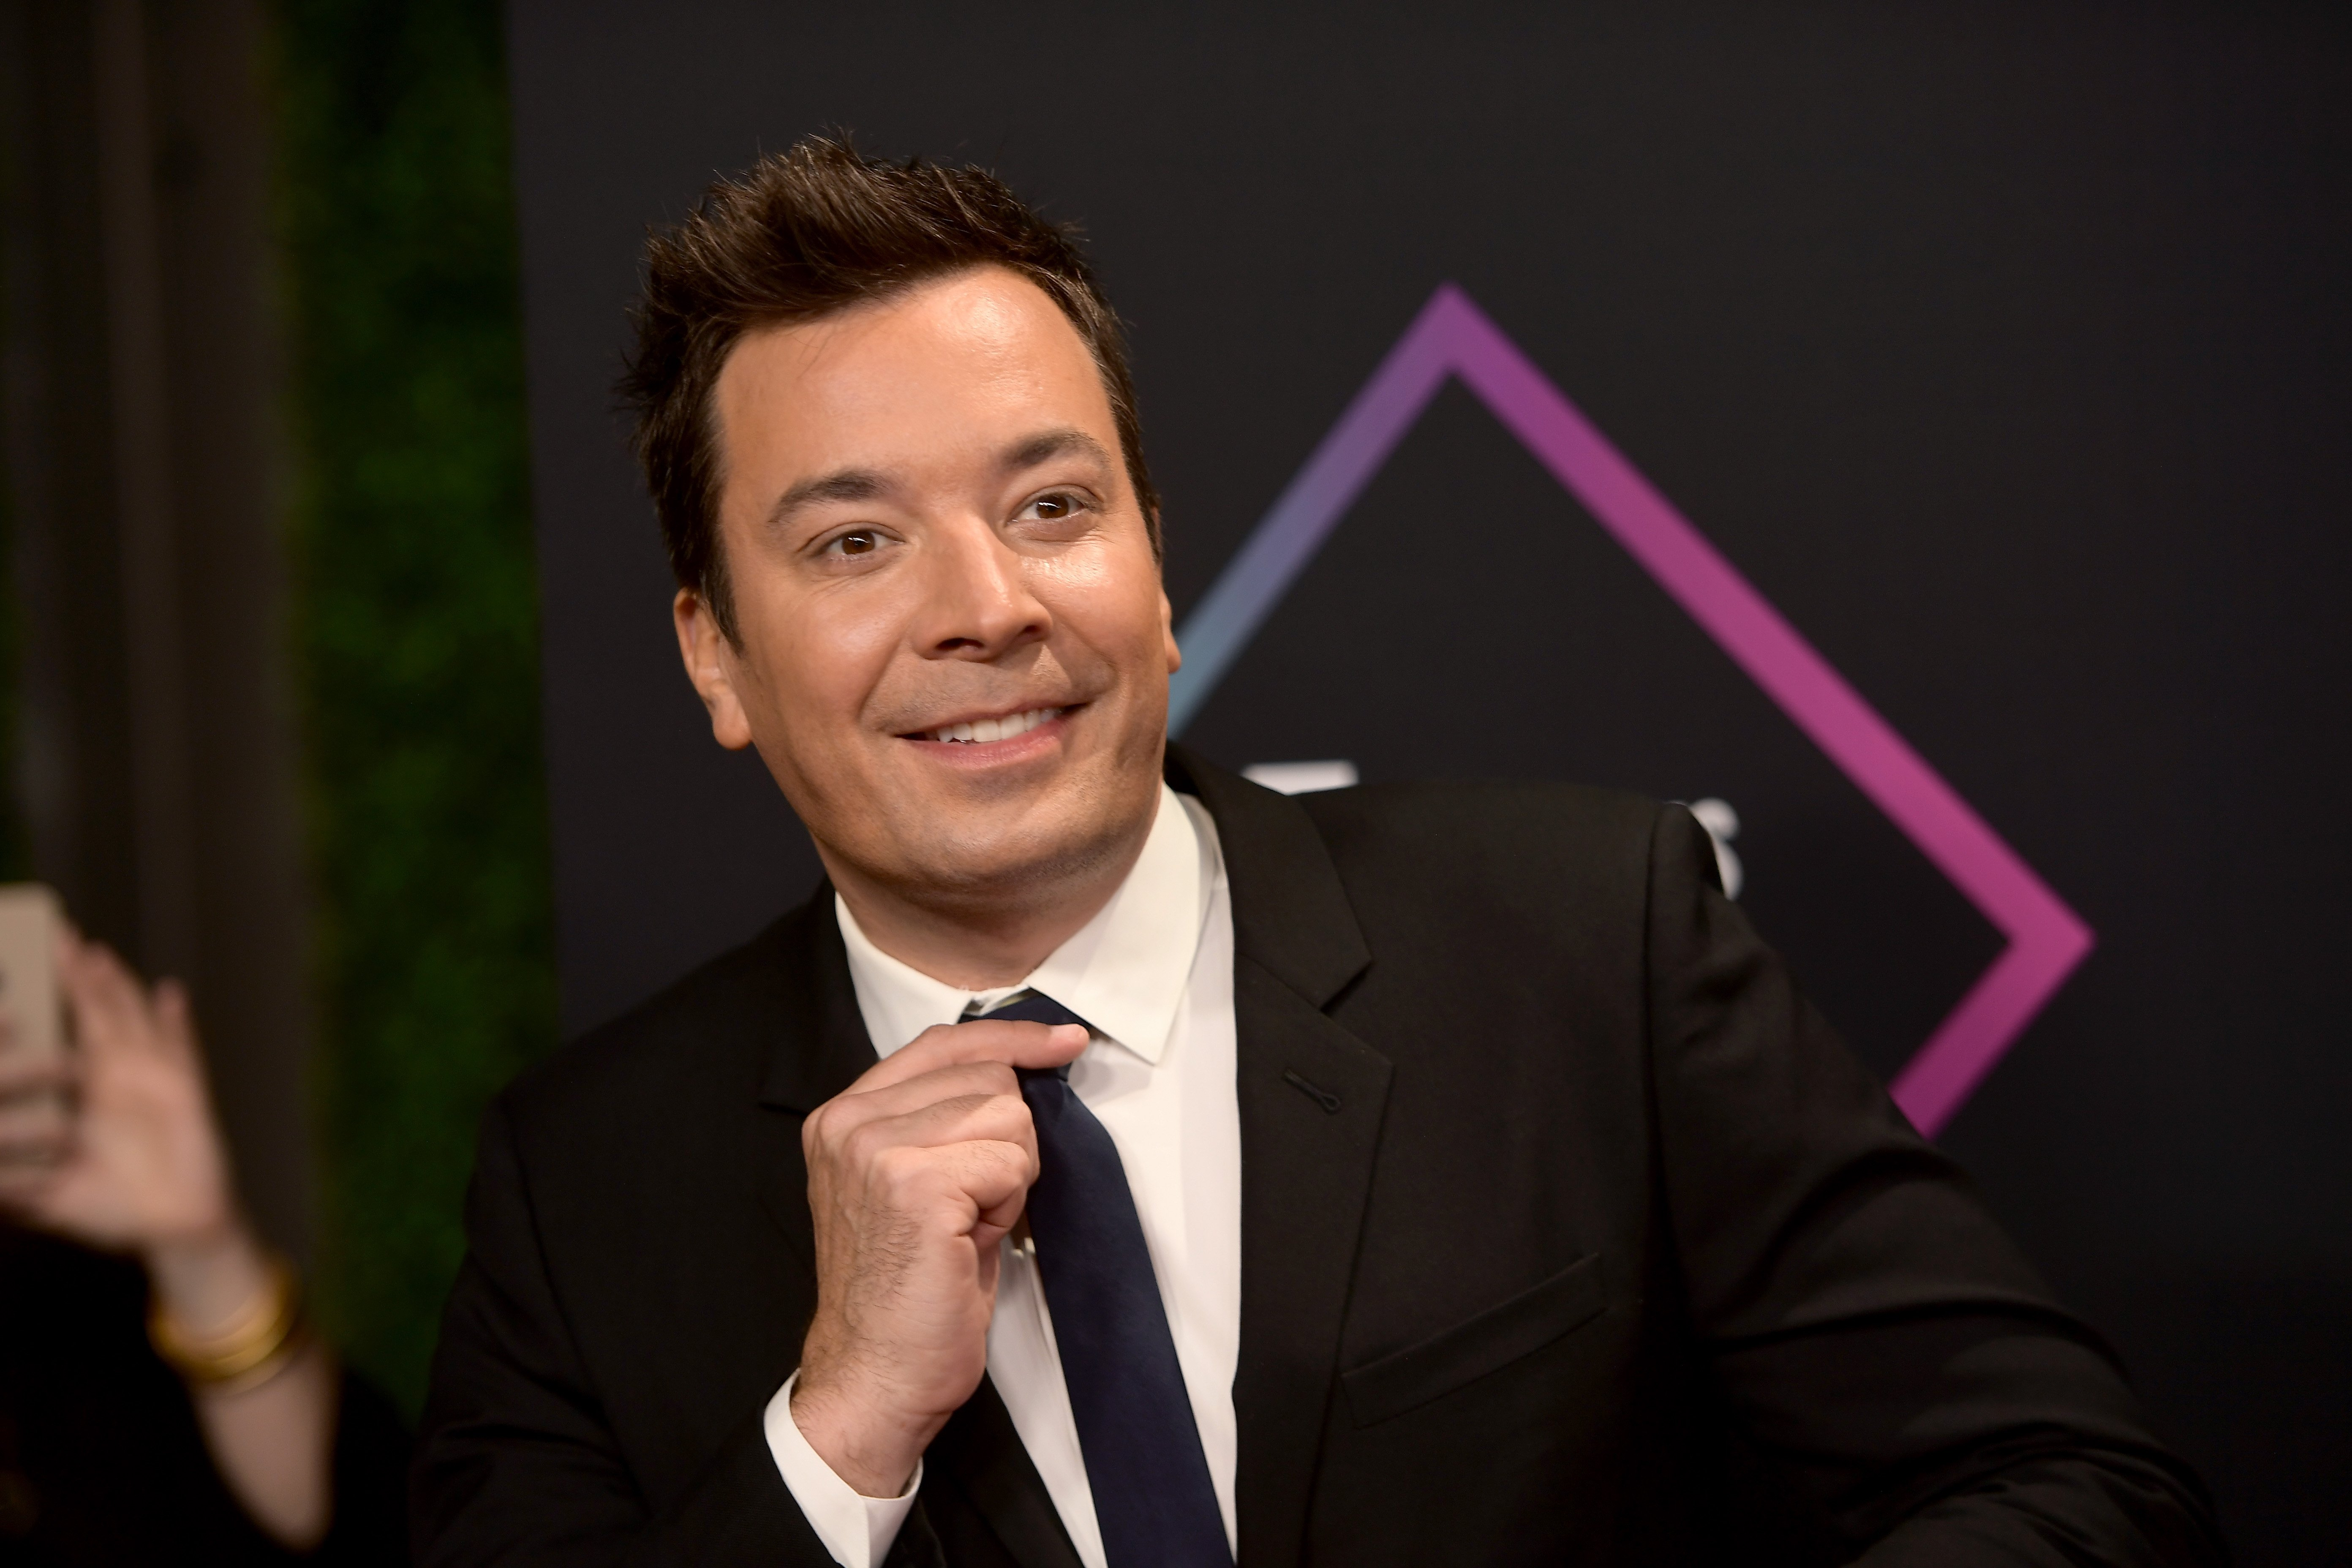 Jimmy Fallon attends the People's Choice Awards on November 11, 2018, in Santa Monica, California. | Source: Getty Images.